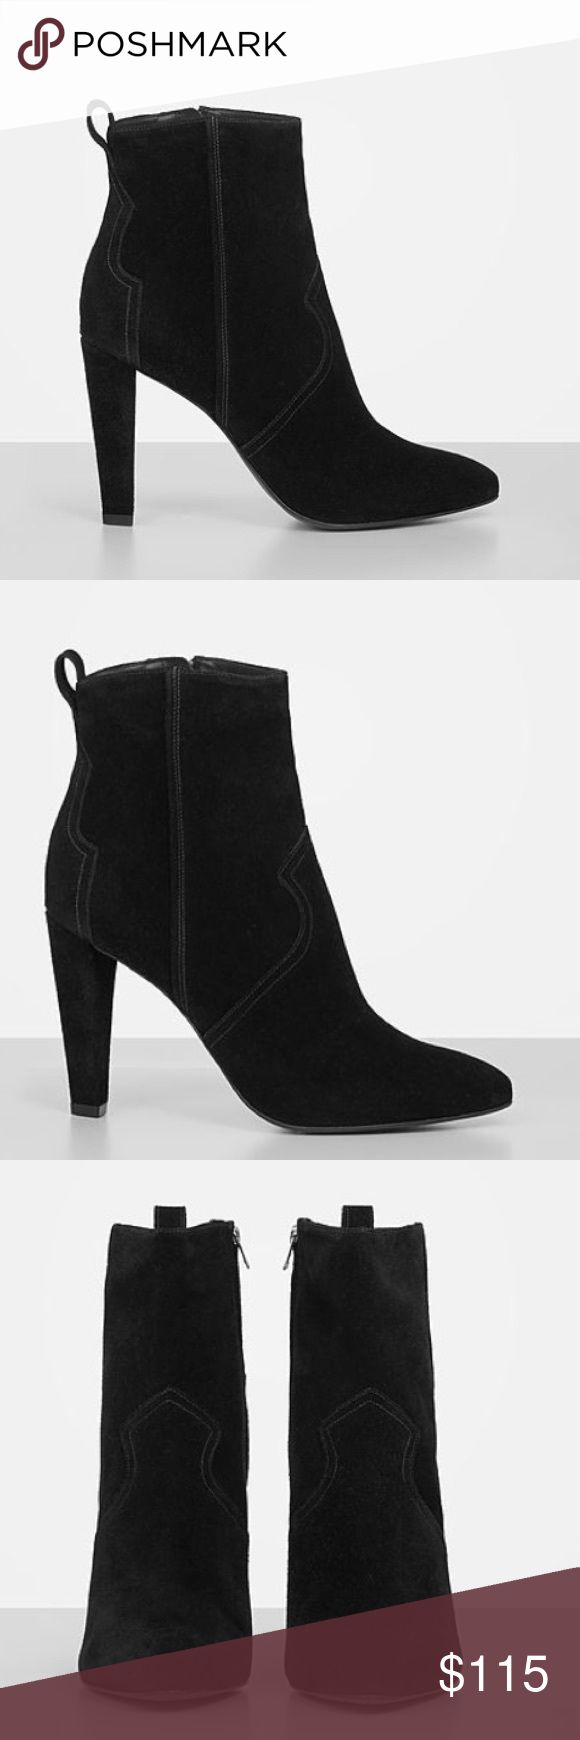 Madlyn Suede Heels - AllSaints Suede heels from AllSaints. BRAND NEW without the box! Size 39 equivalent to a size 7.5/8. They do run on the larger side so perfect for a size 8! All Saints Shoes Heeled Boots